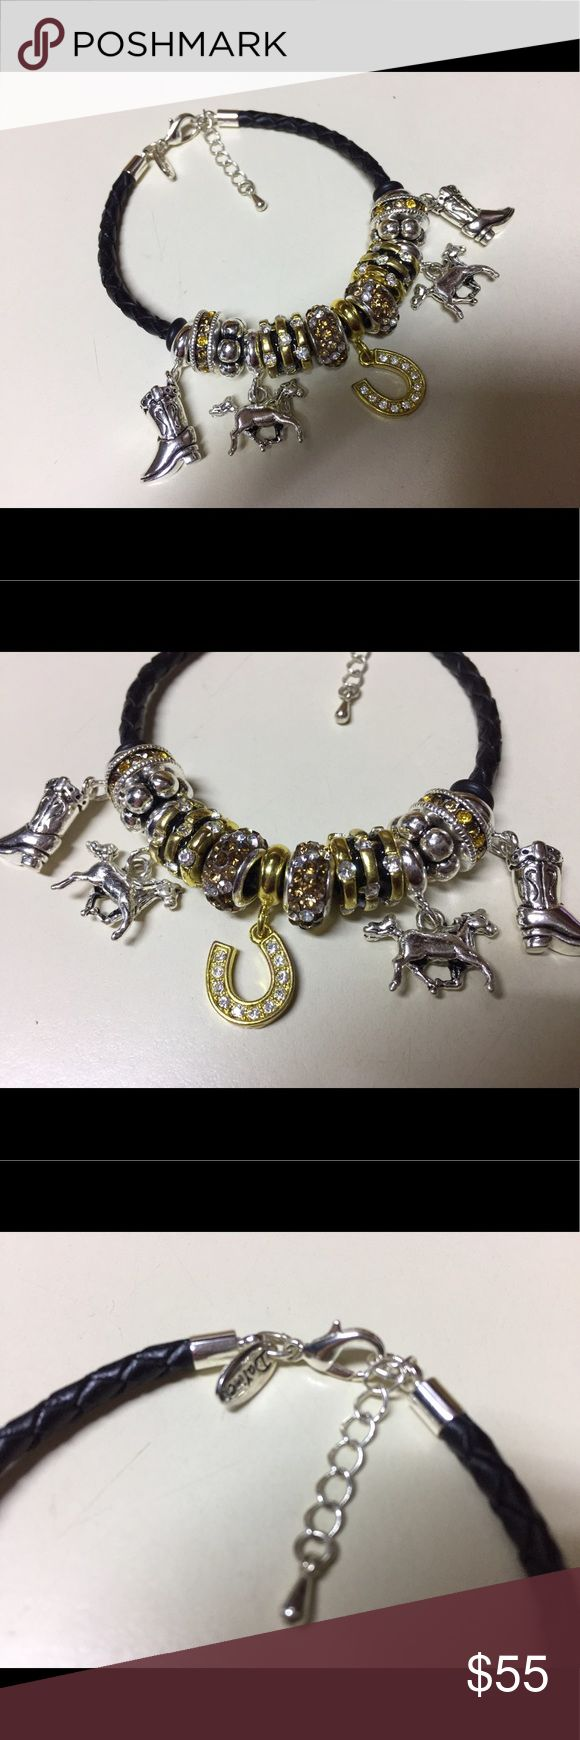 Davinci charms bracelet - Authentic Davinci Equestrian European Bracelet Perfect For Horse Lovers This Bracelet Is Designed From